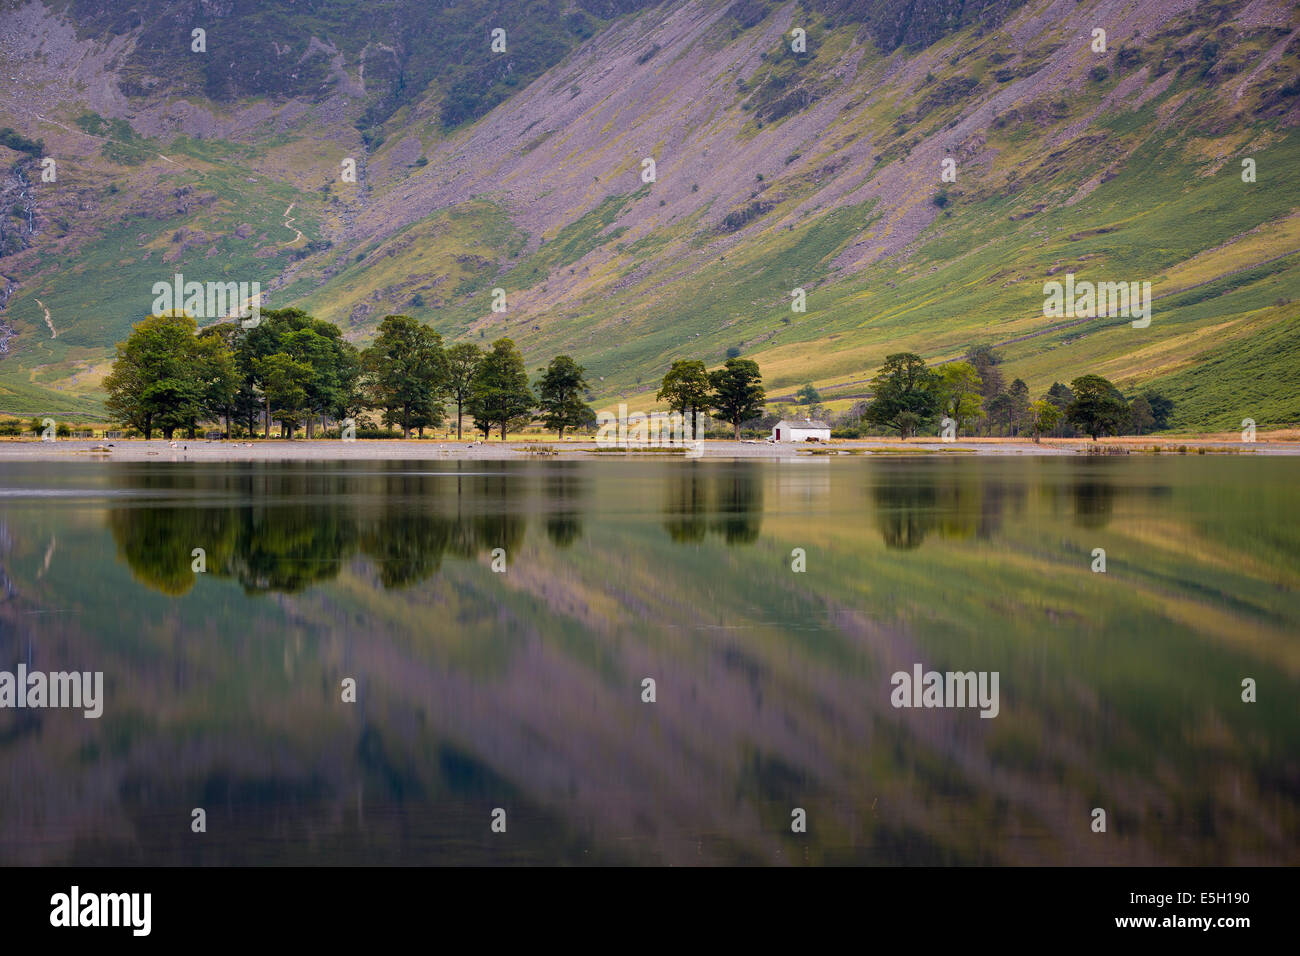 Pre-dawn reflections on Buttermere Lake, Cumbria, Lake District, England Stock Photo